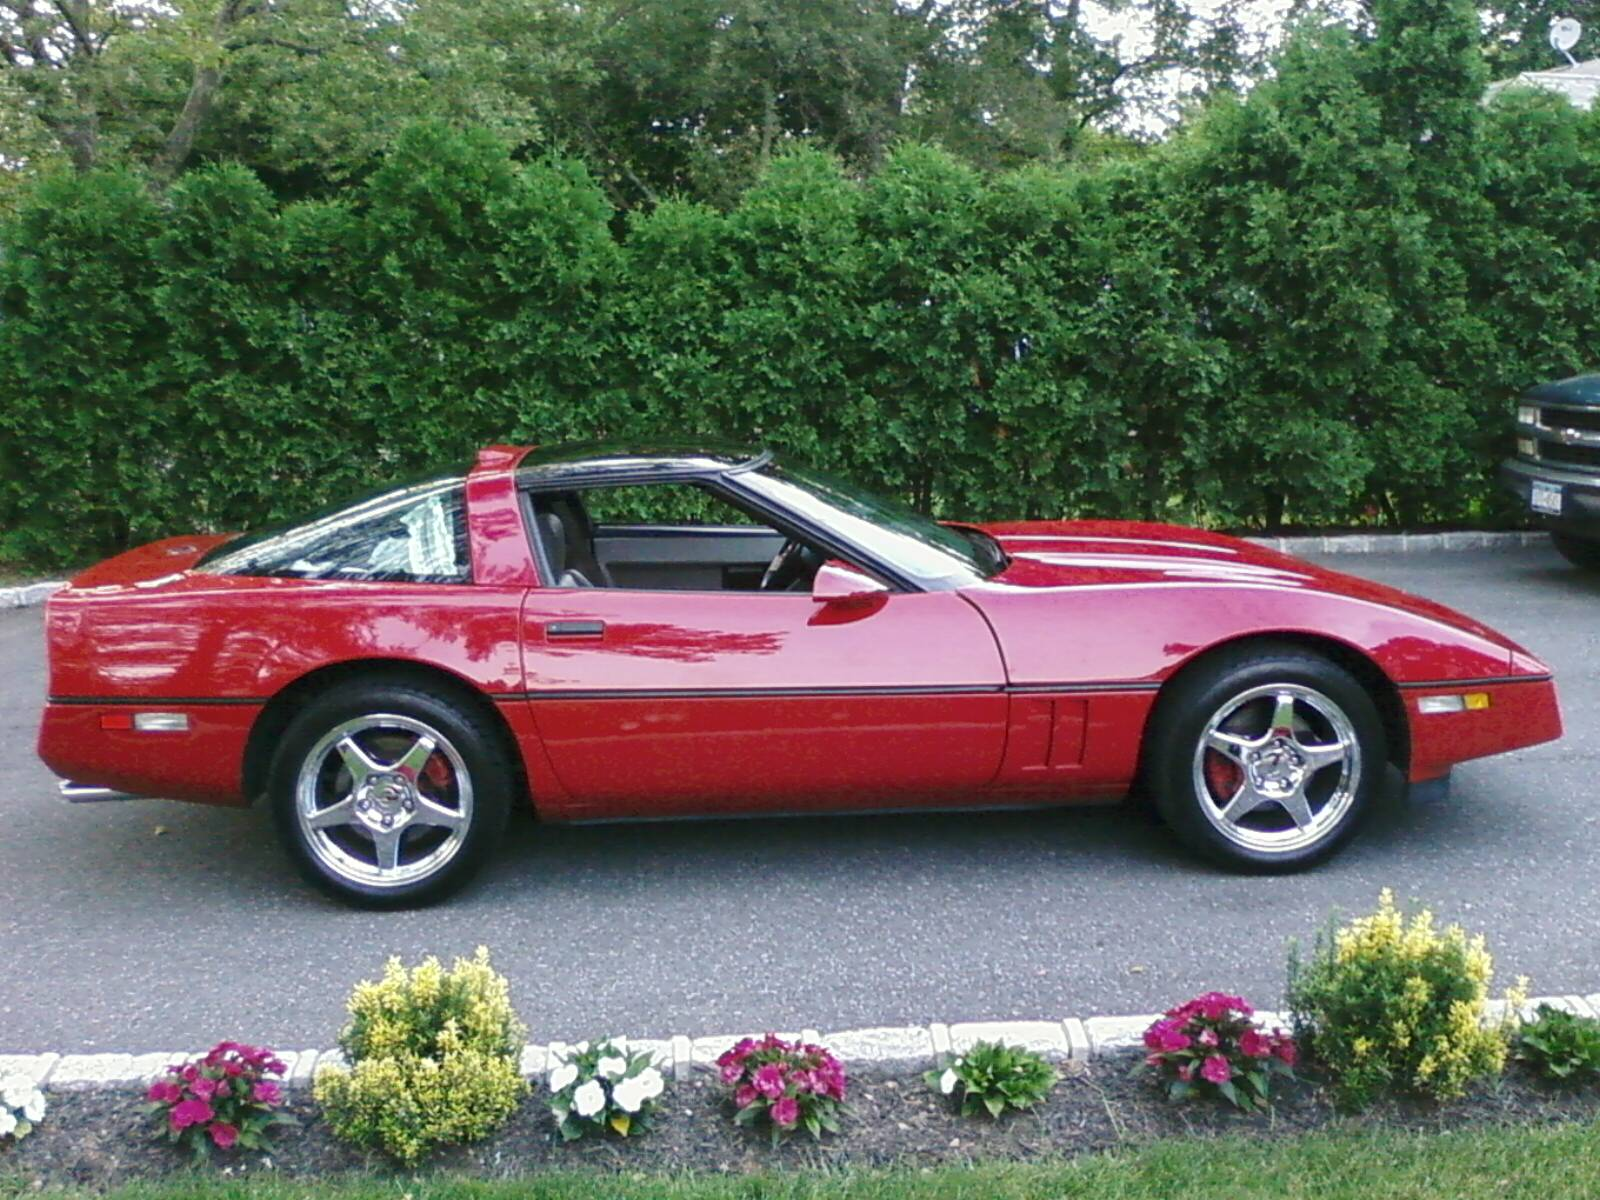 1988 c4 corvette ultimate guide overview specs vin info performance more. Black Bedroom Furniture Sets. Home Design Ideas